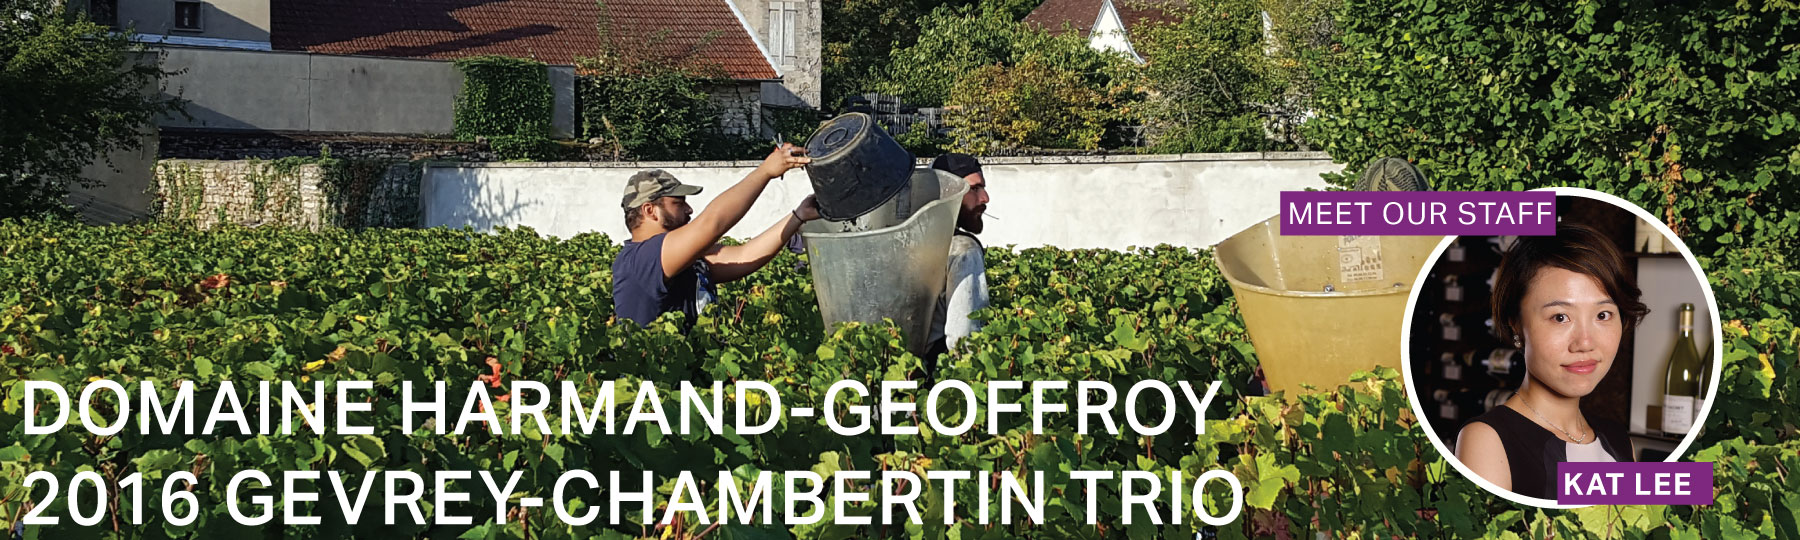 Fine Wine Friday: Domaine Harmand-Geoffroy 2016 Gevrey-Chambertin Trio